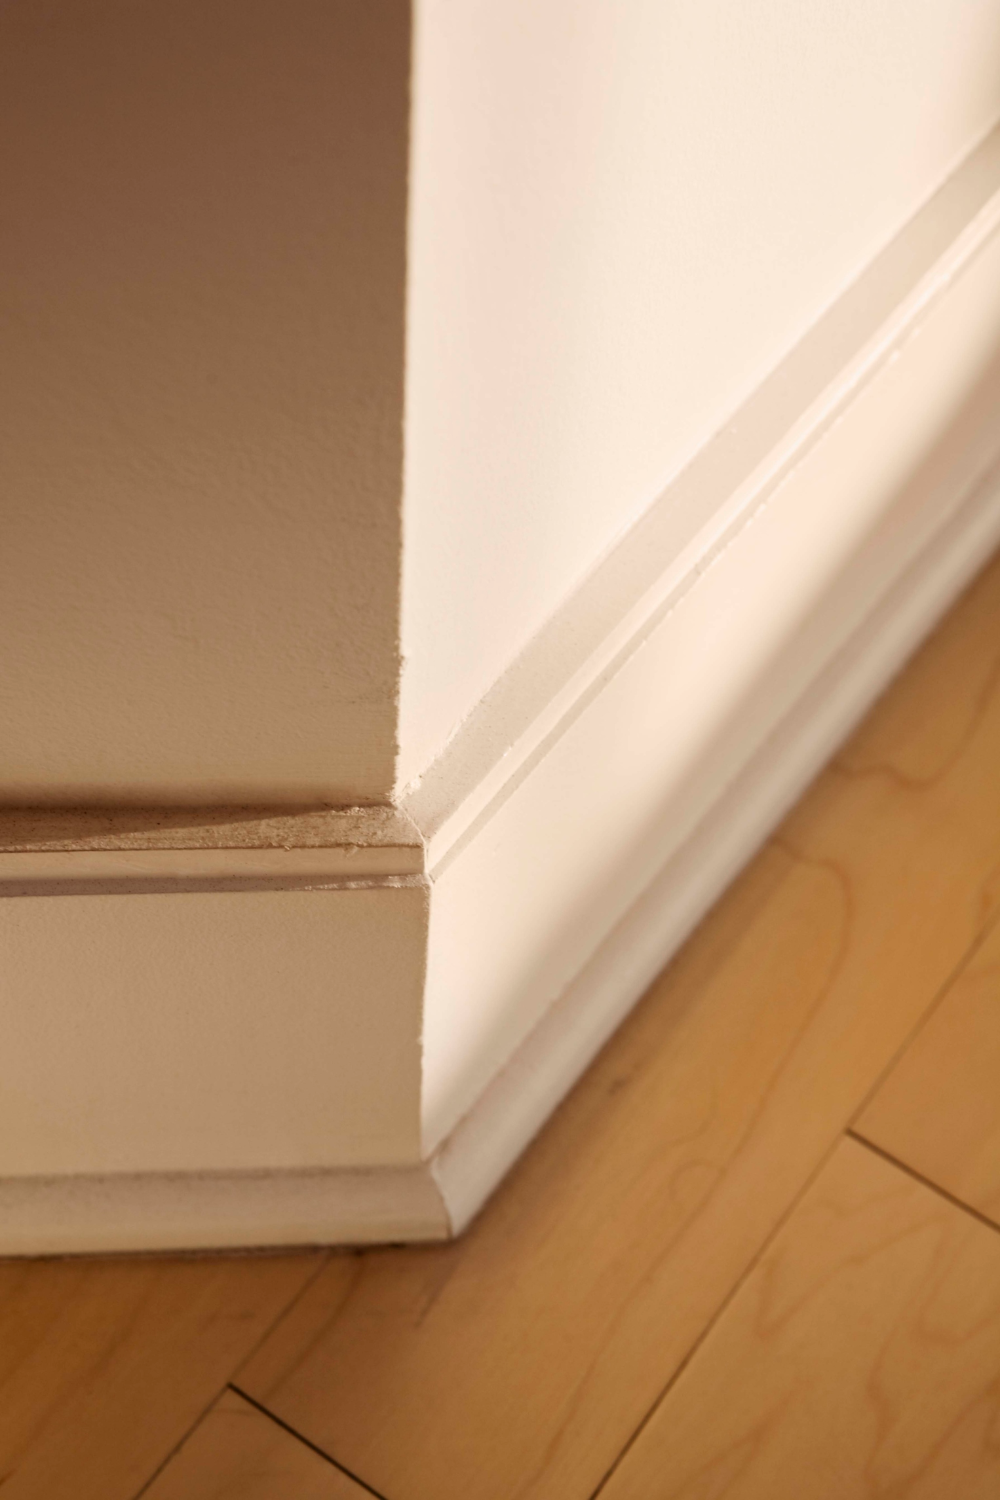 How To Remove Glue From Baseboards In 2020 Removing Baseboards Baseboards Baseboard Trim